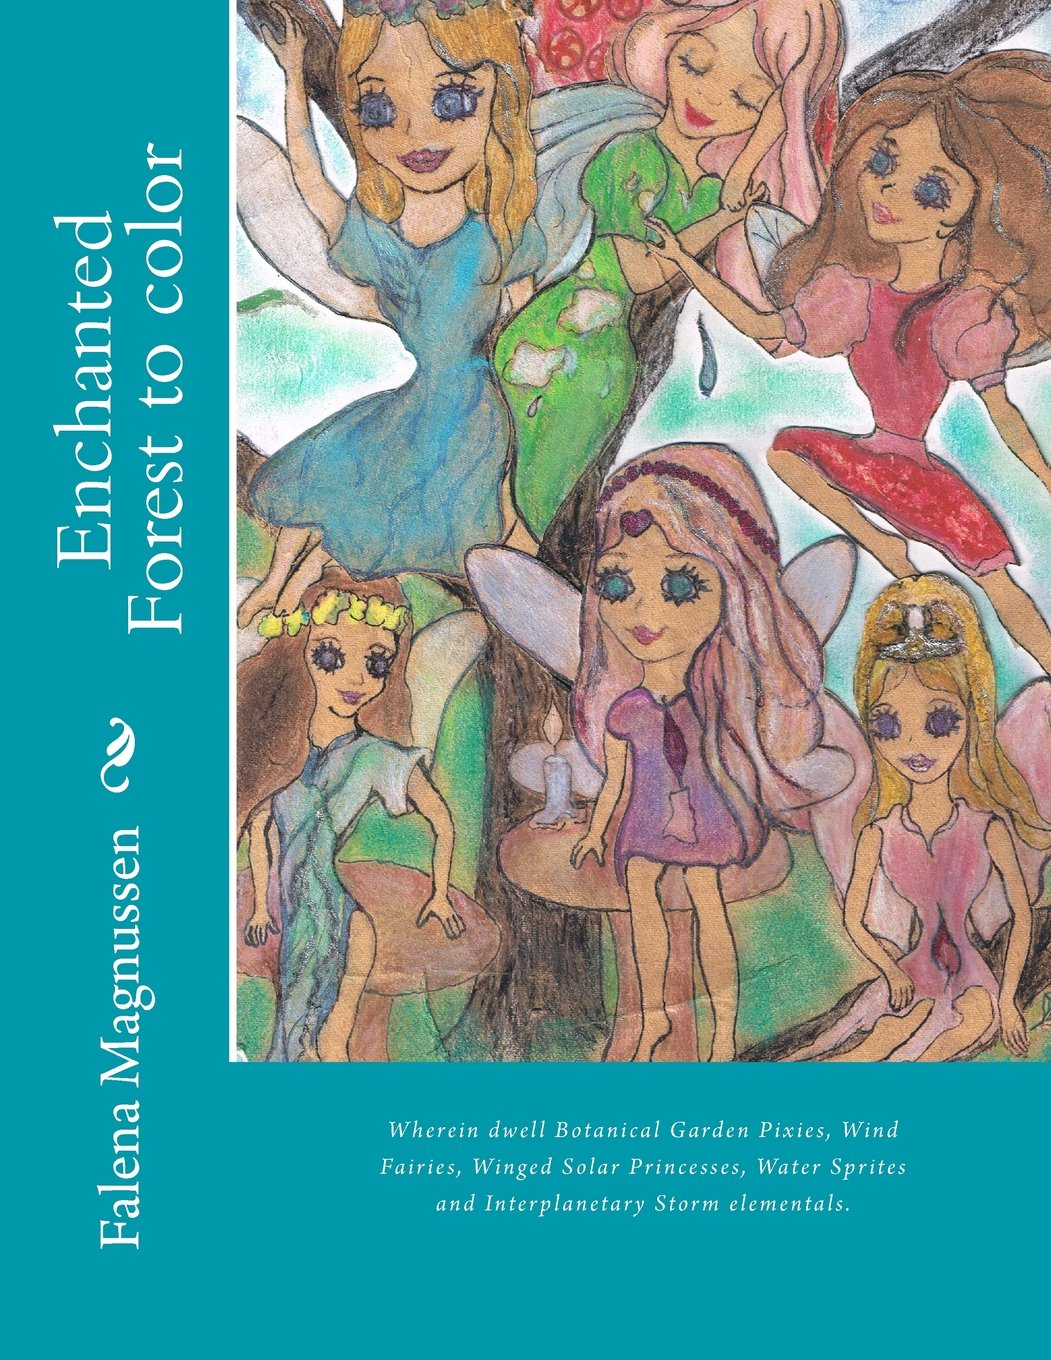 Download Enchanted Forest to color: Wherein dwell Botanical Garden Pixies, Wind Fairies, Winged Solar Princesses, Water Sprites and Interplanetary Storm elementals. ebook